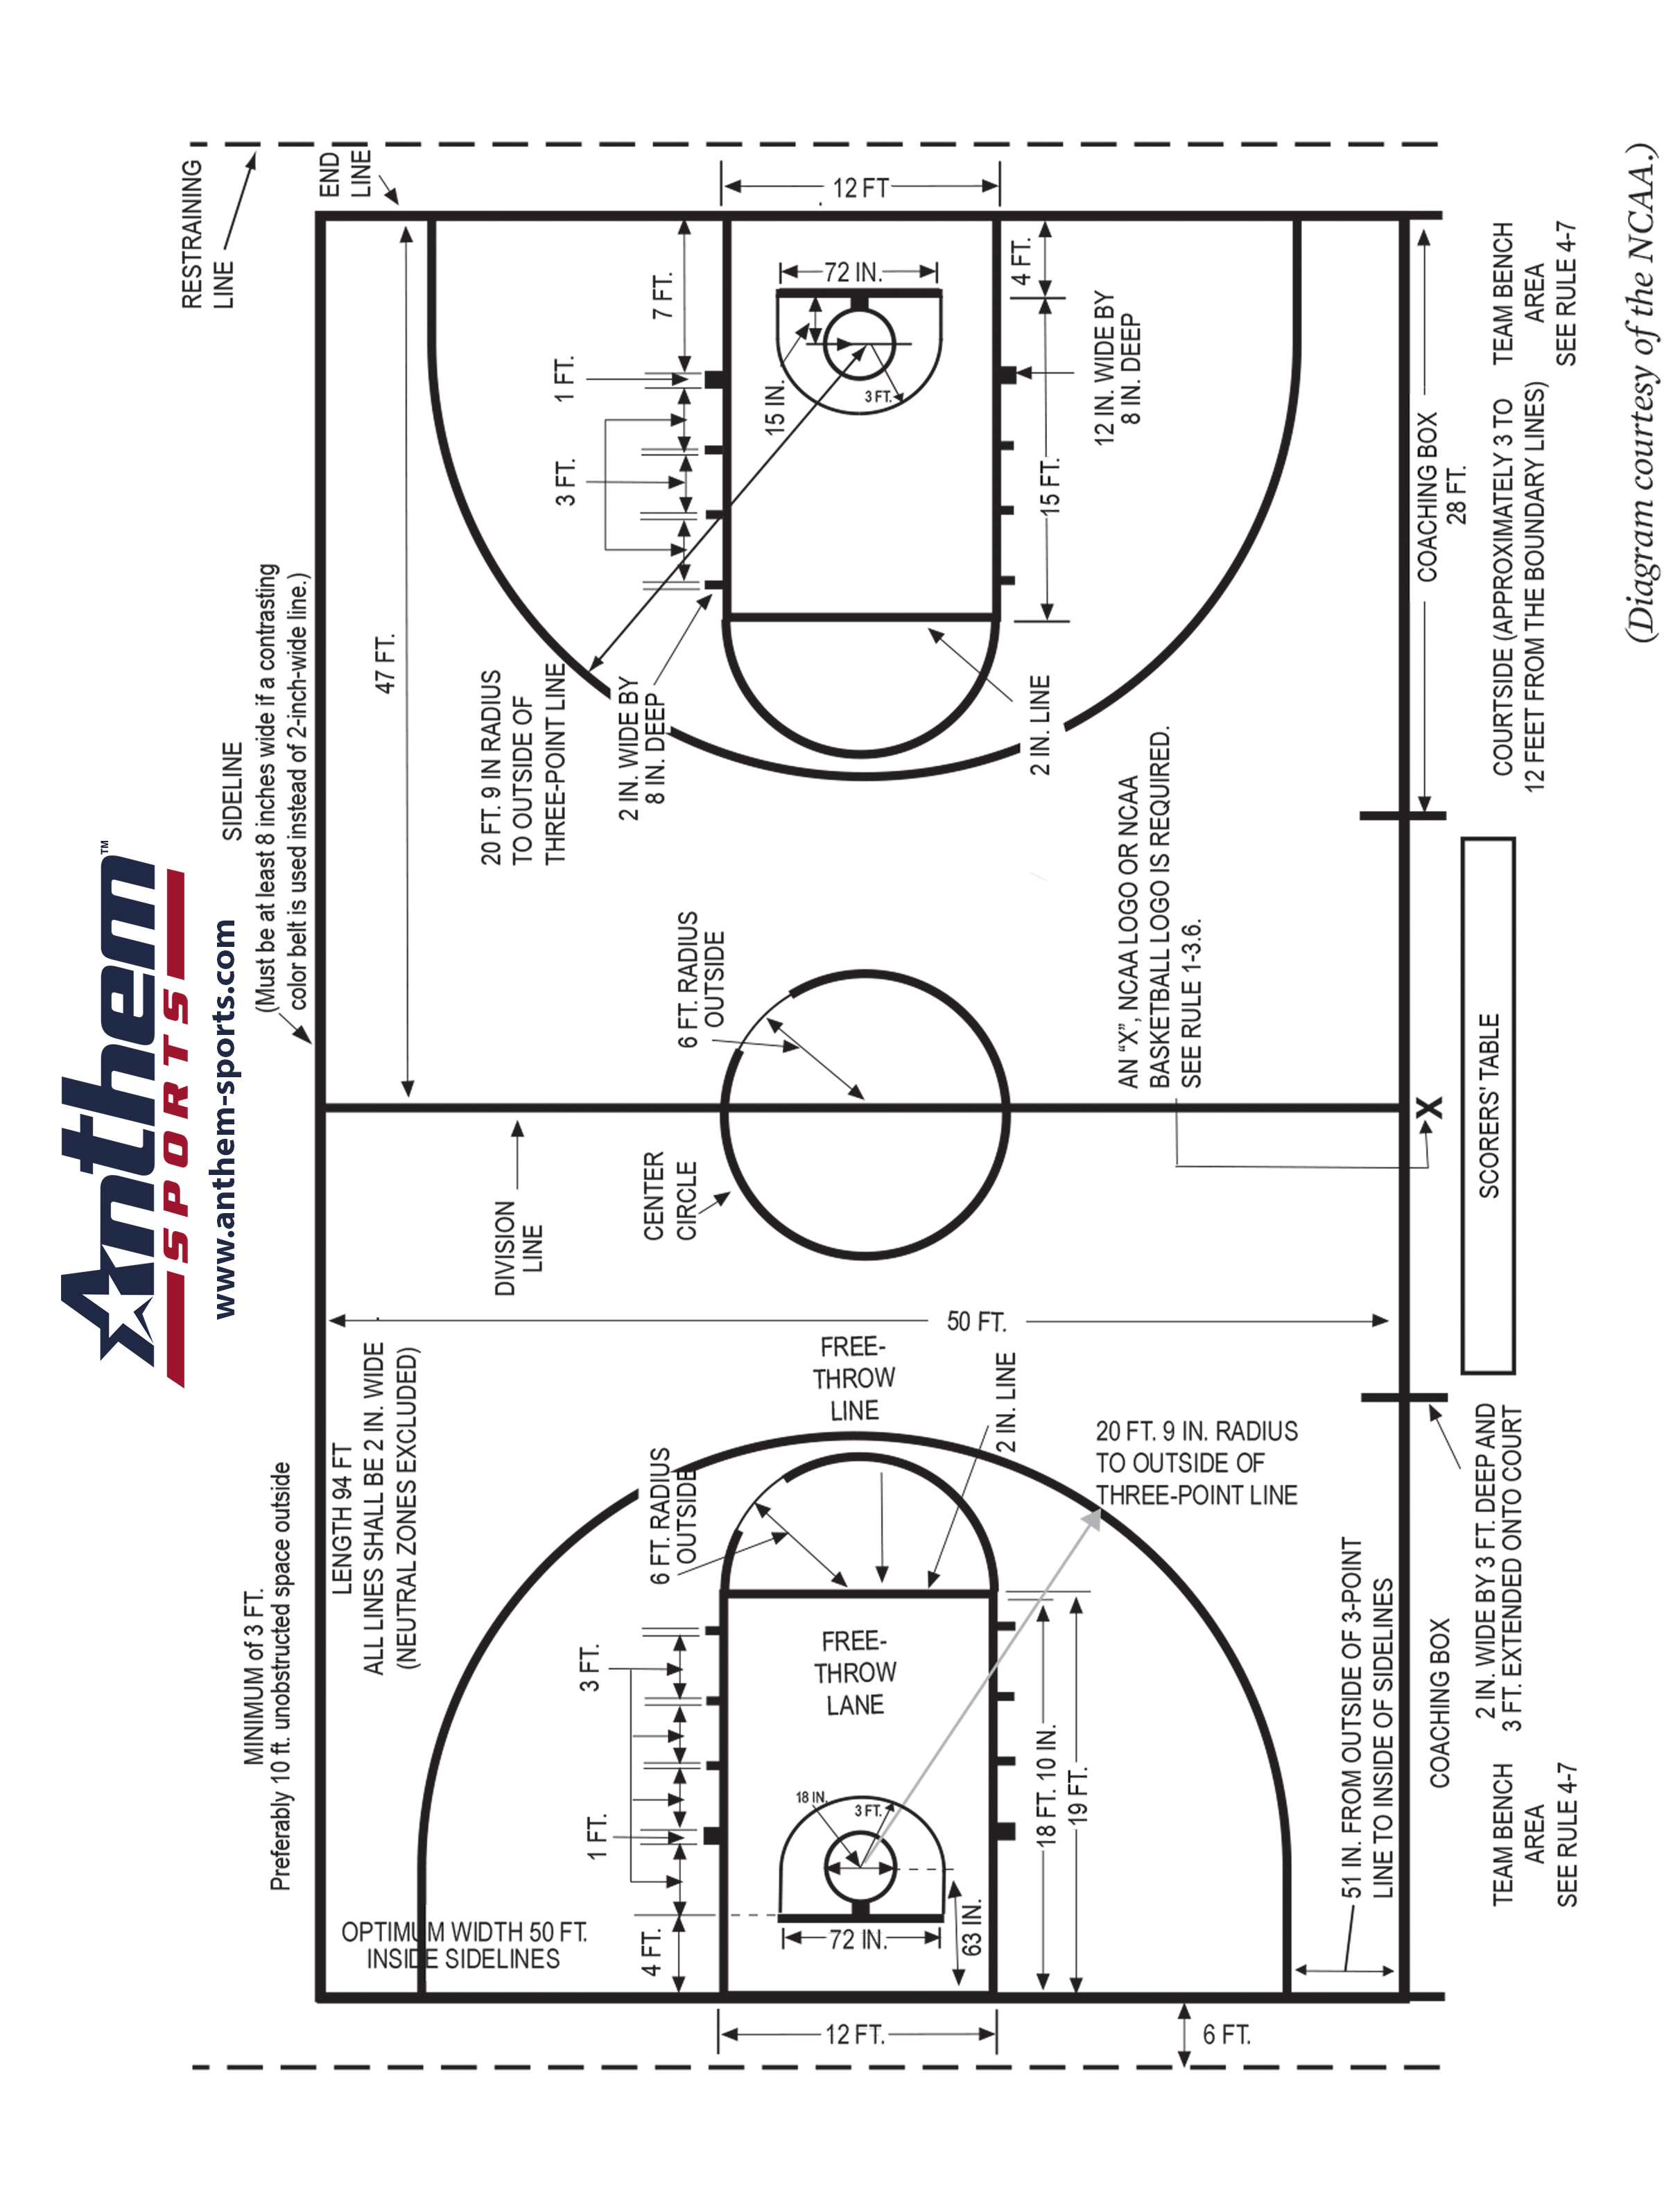 Pads Basketball Court Diagram Complete Wiring Diagrams